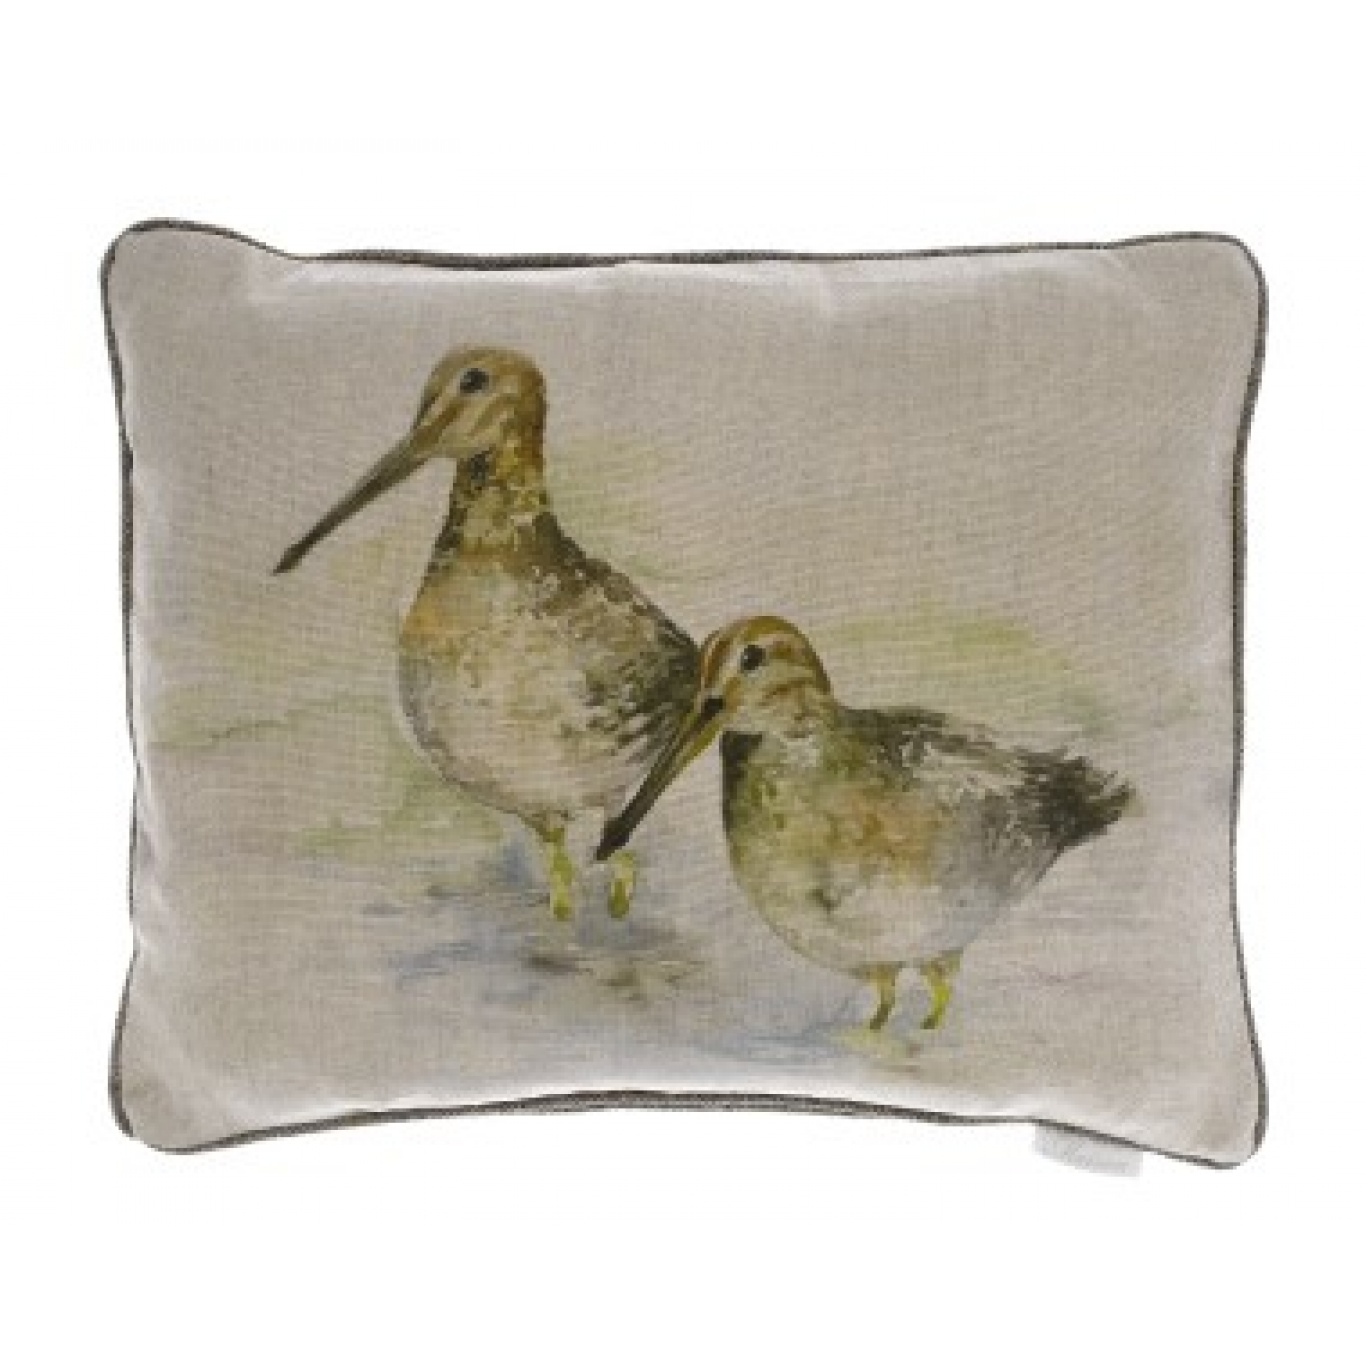 Image of Voyage Water Snipe Cushion